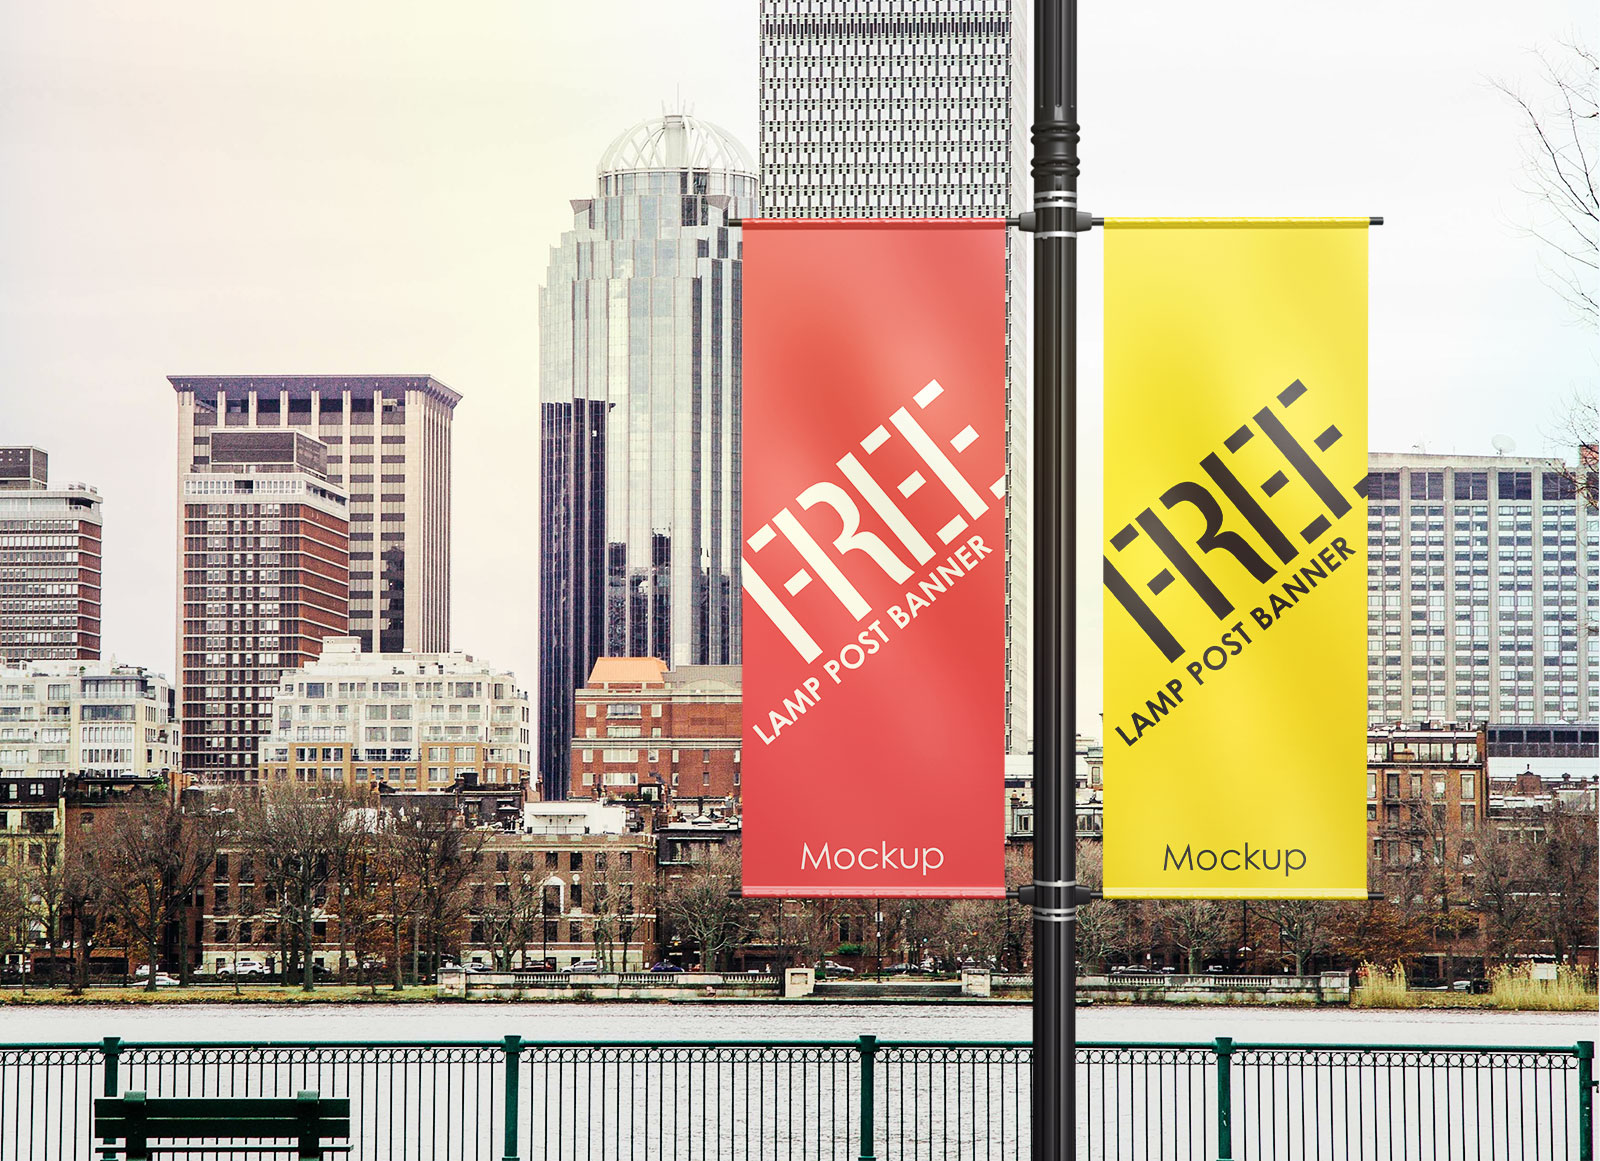 Free-Outdoor-Advertising-Lamp-Post-Banner-Mockup-PSD